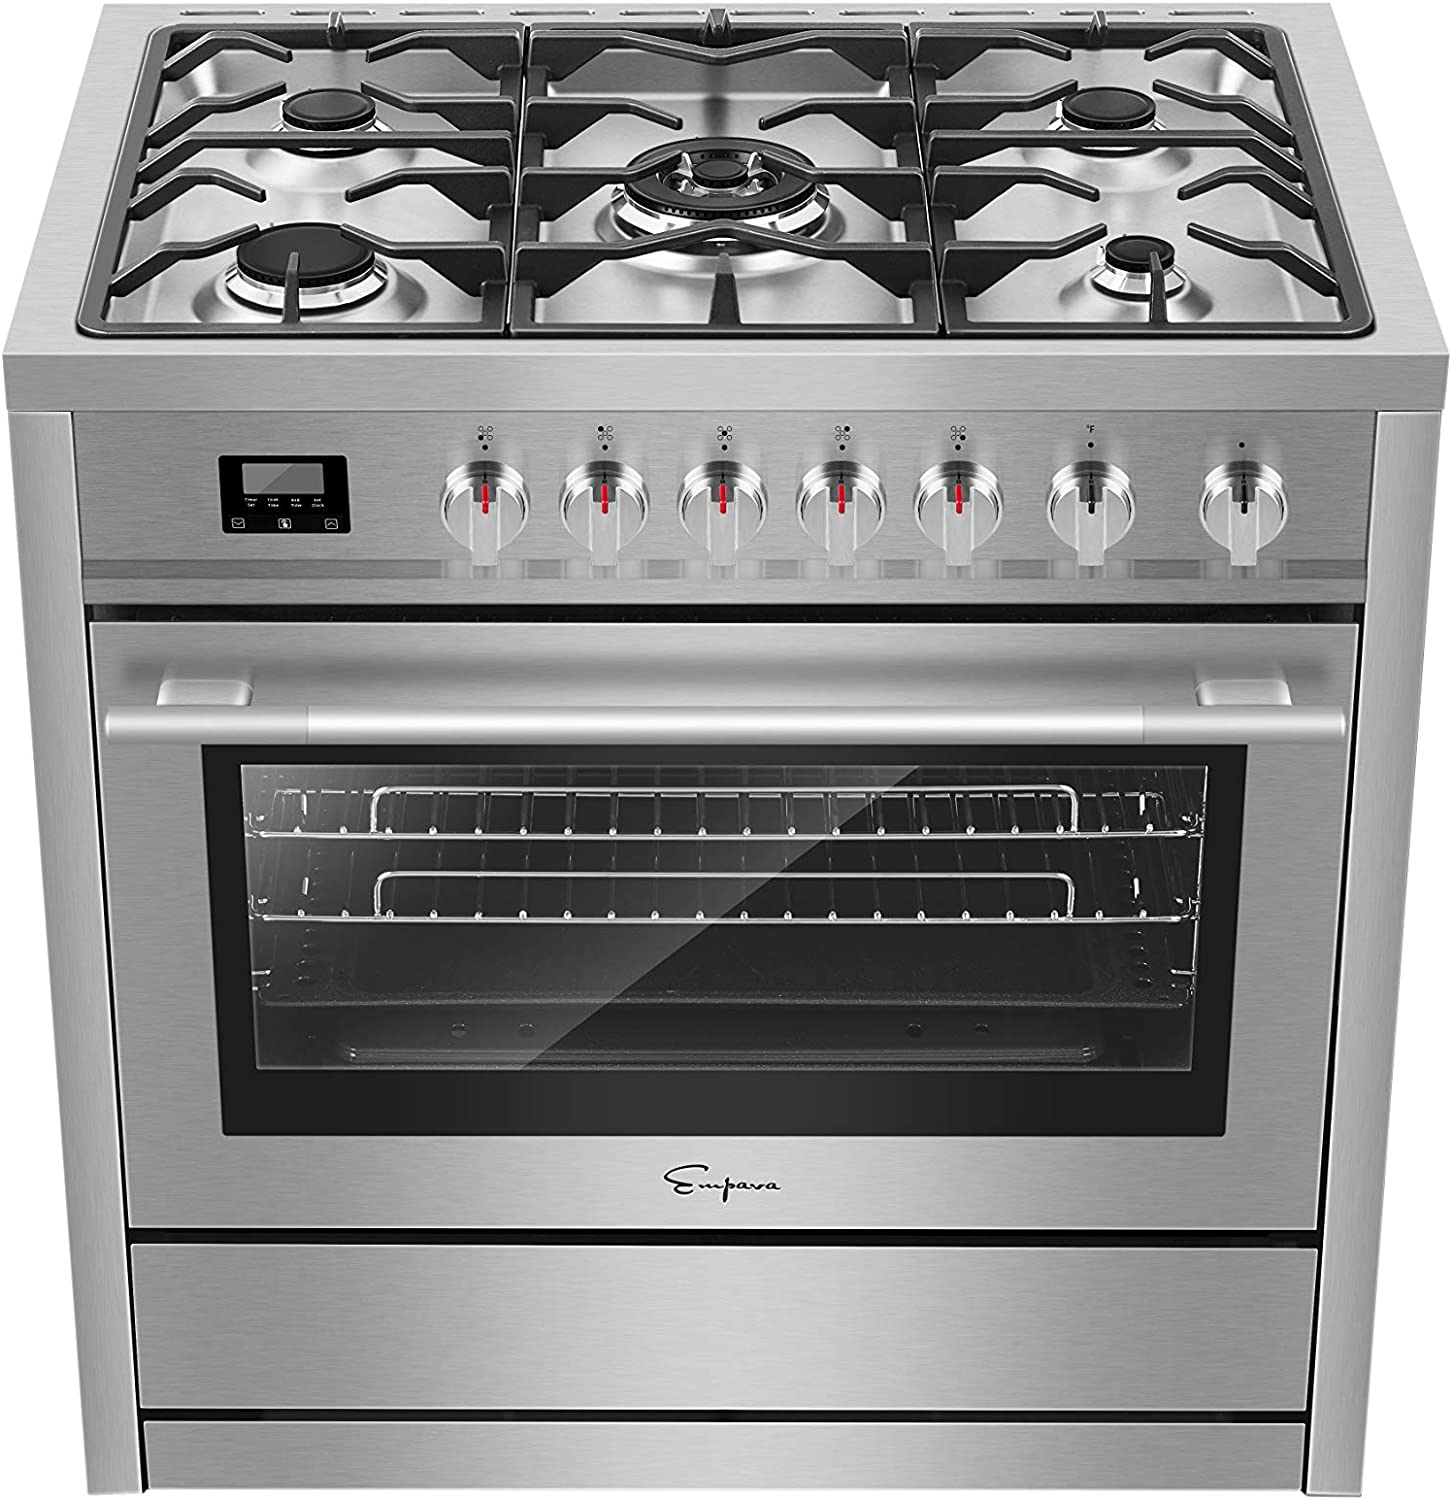 Empava Gas cooktop : Best gas cooktop with downdraft